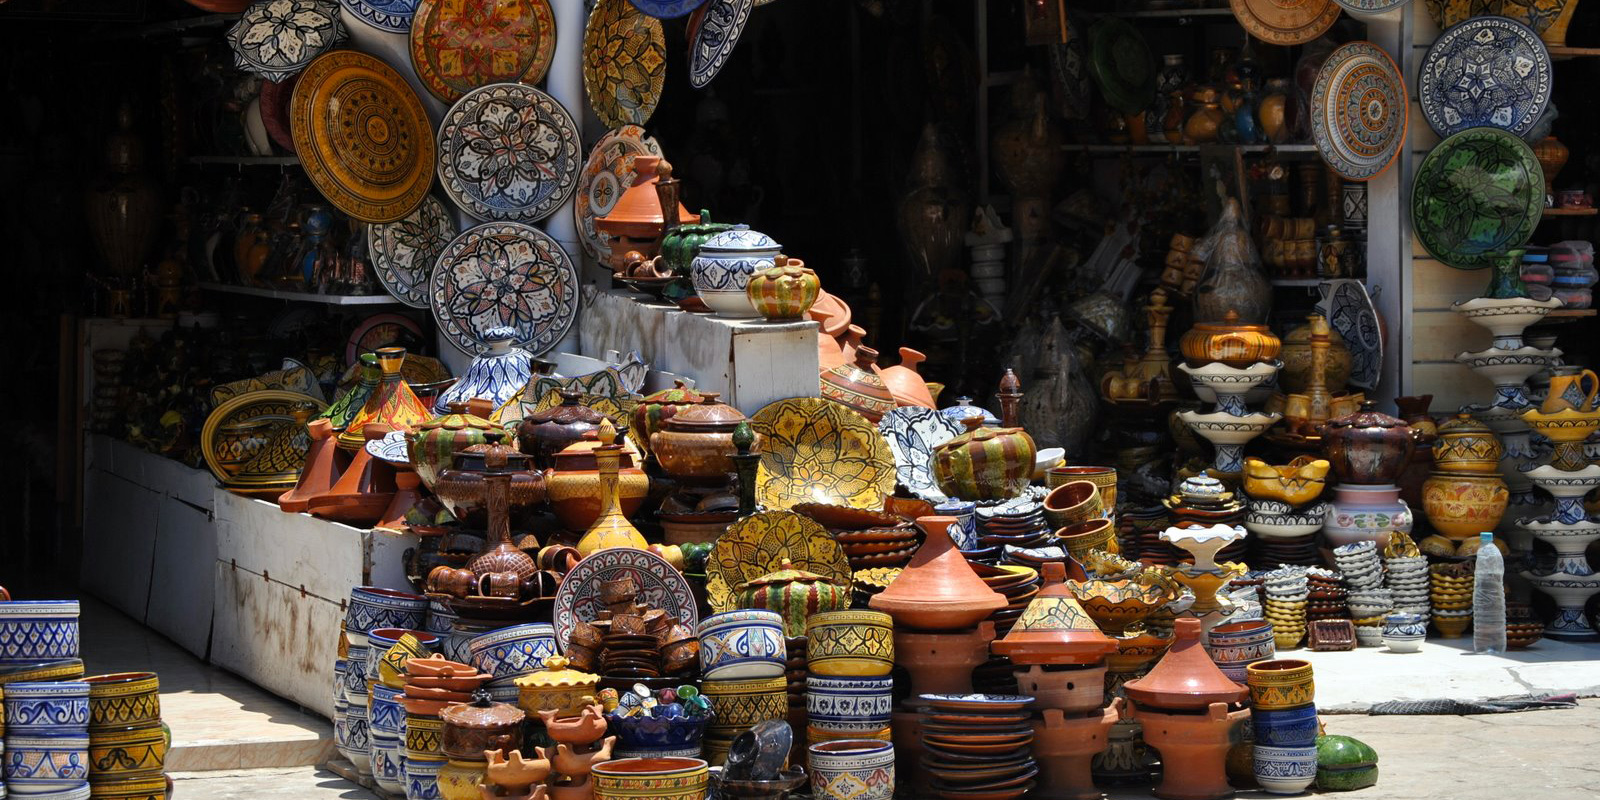 safi traditional pottery for shopping tourism in morocco